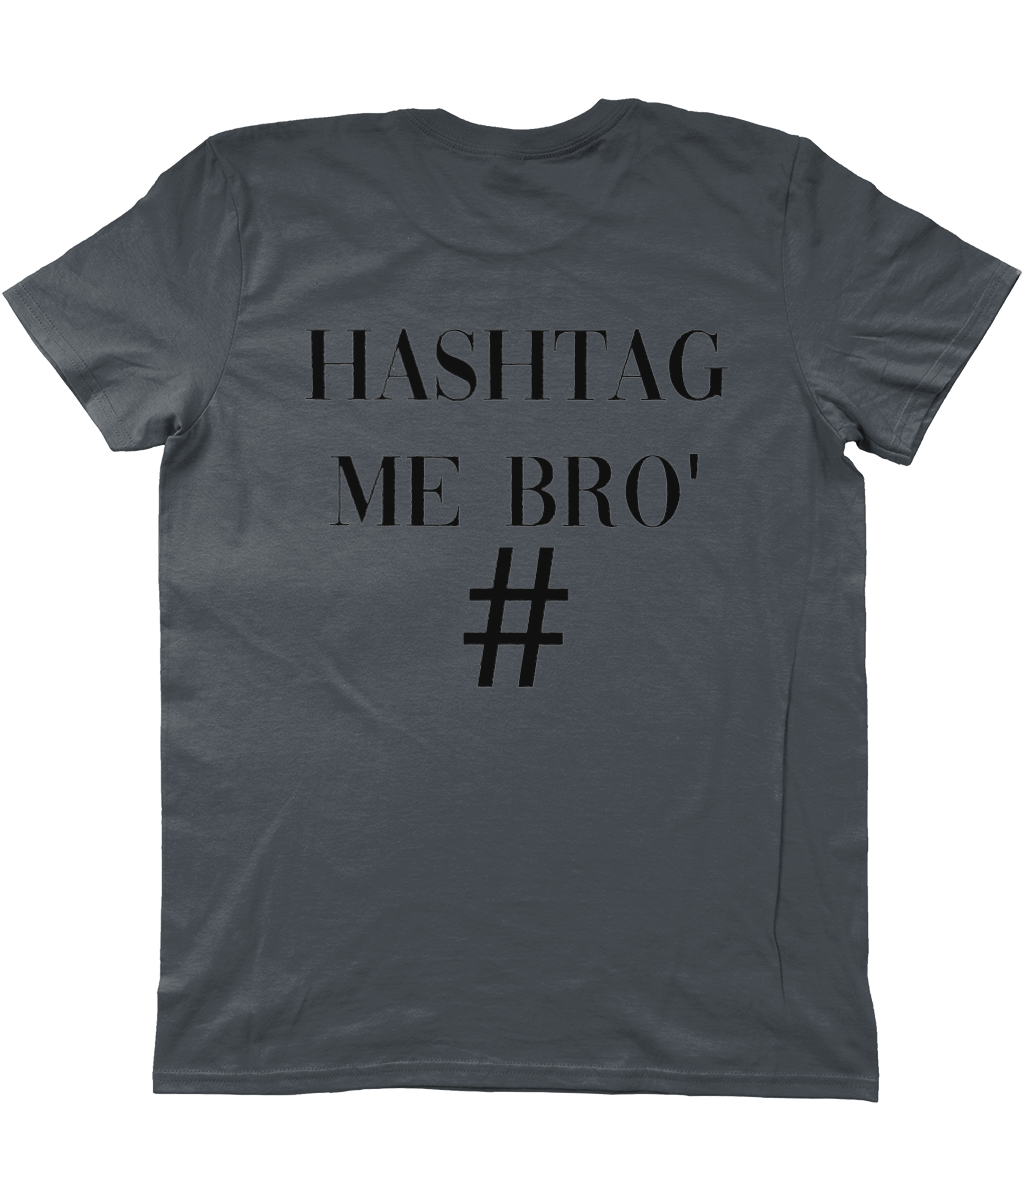 AG Wear Basic T-Shirt Hashtag Back Logo 2 HASHTAG ME BRO BLACK